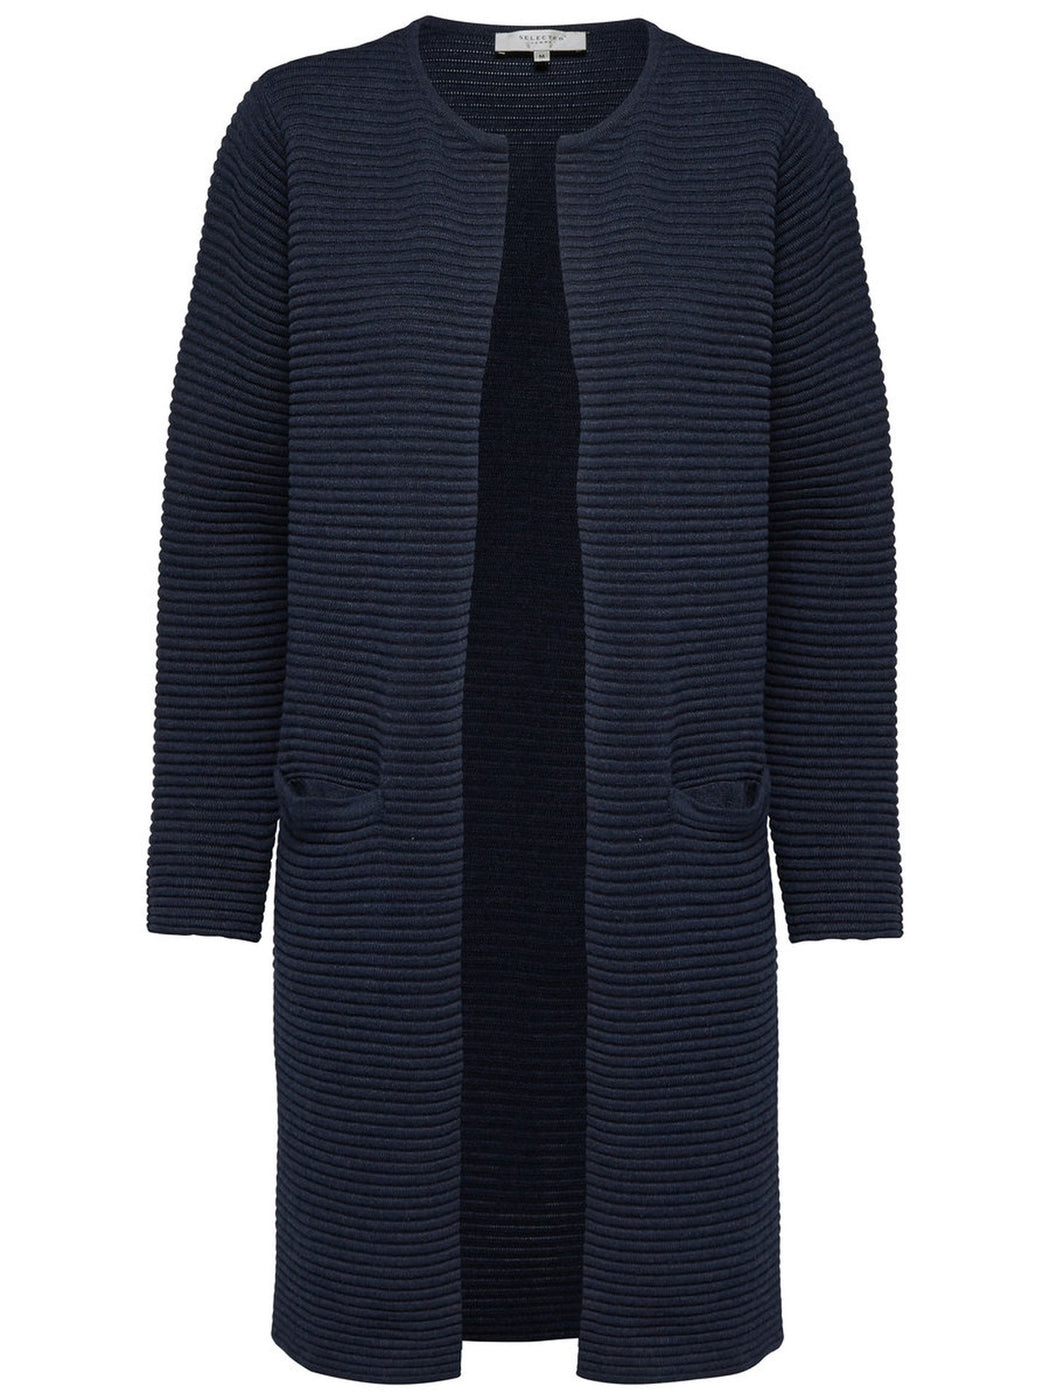 Laua Long Sleeve Navy Cardigan